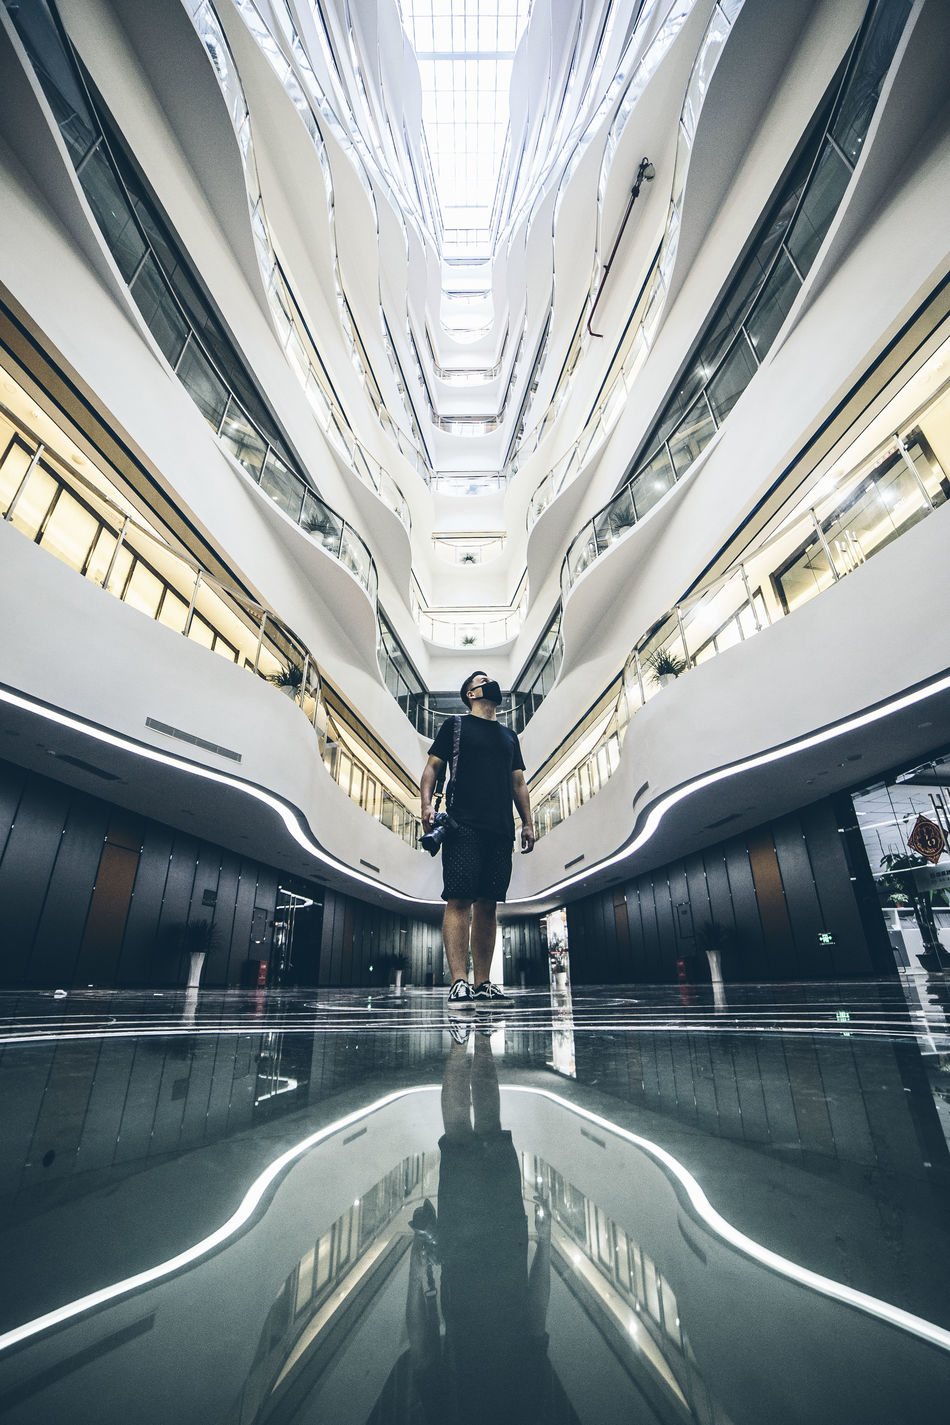 Architecture Building Exterior Built Structure City City Life Day Diminishing Perspective Leisure Activity Lifestyles Lookup Man Modern Road Shenzhen The Way Forward Unrecognizable Person Vanishing Point